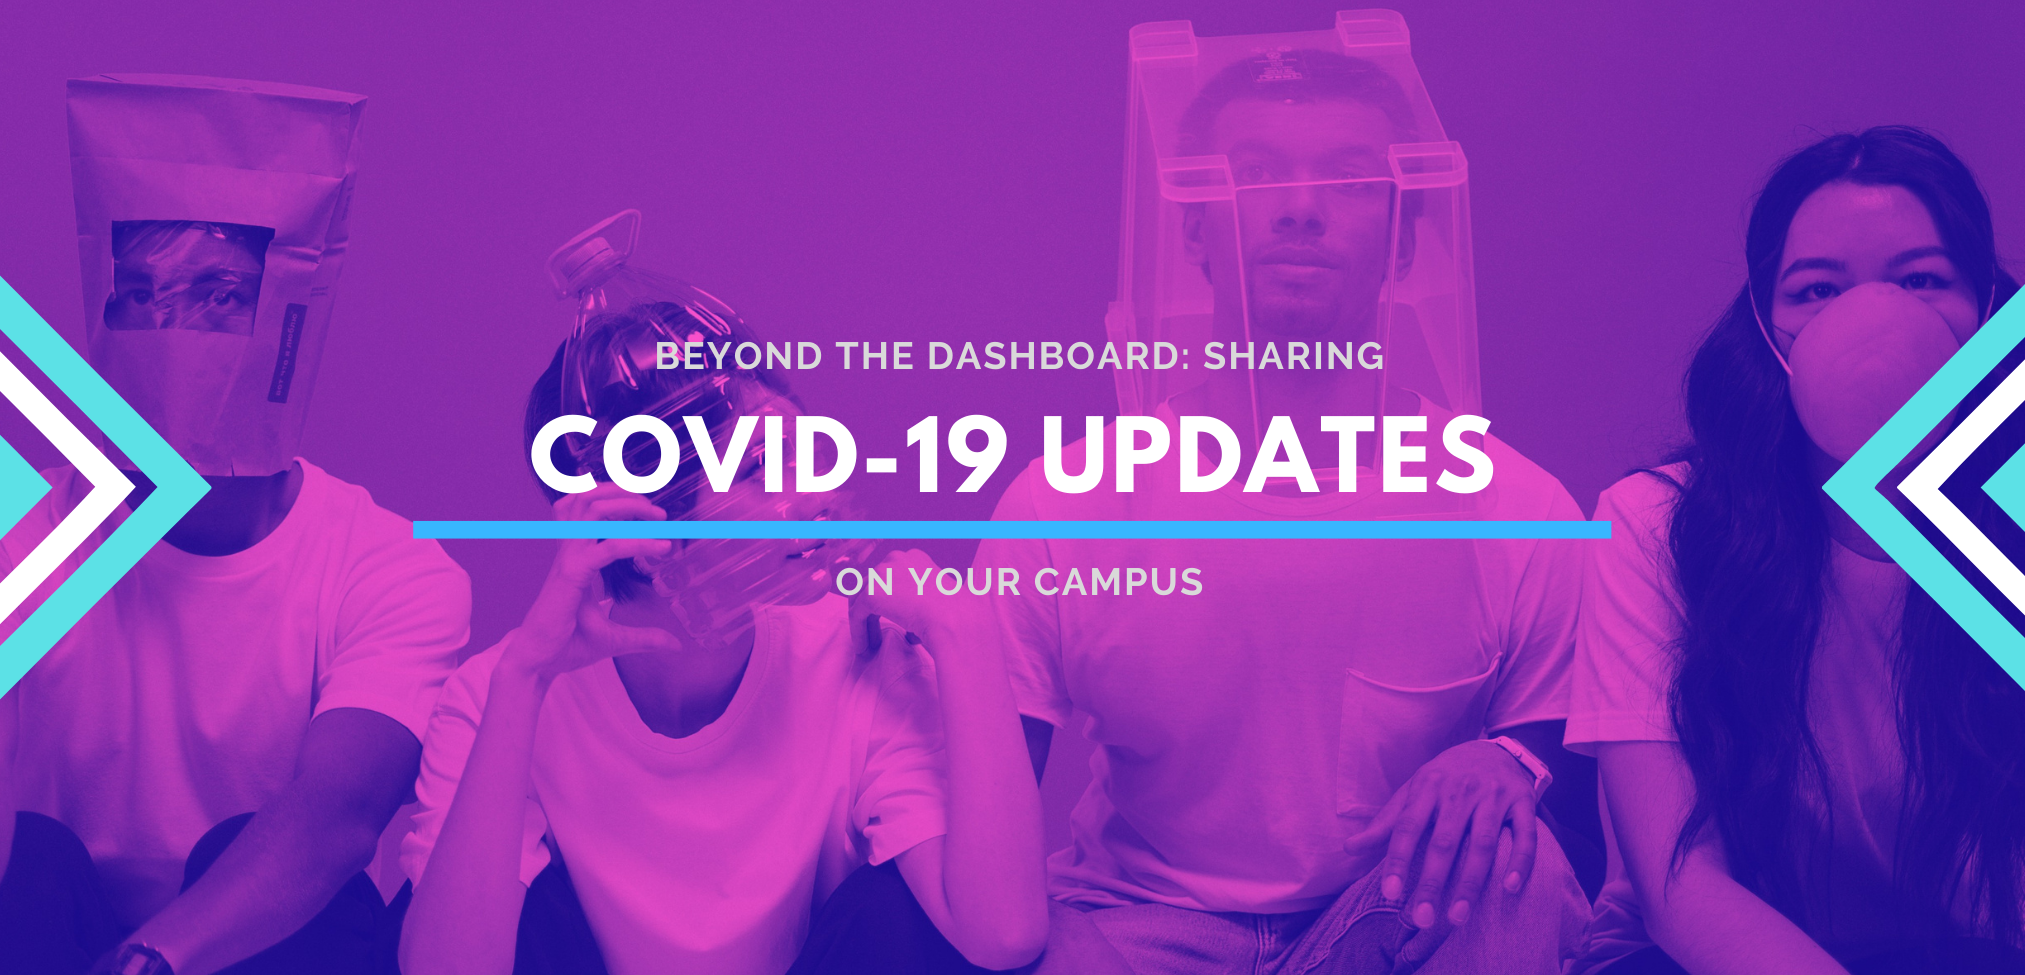 Beyond the Dashboard: How to Communicate COVID-19 Updates on Your Campus